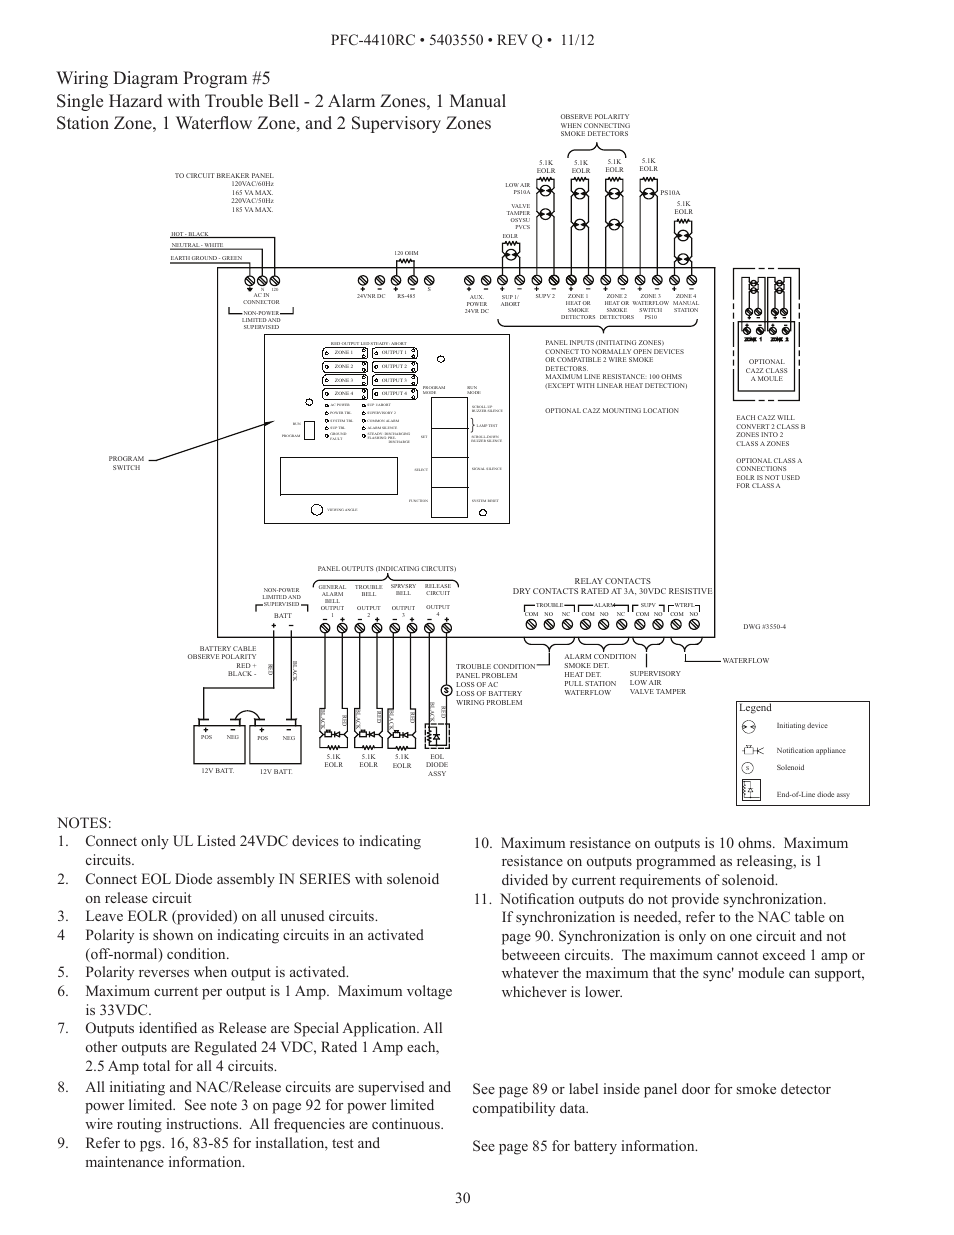 potter tamper switch wiring diagram   35 wiring diagram